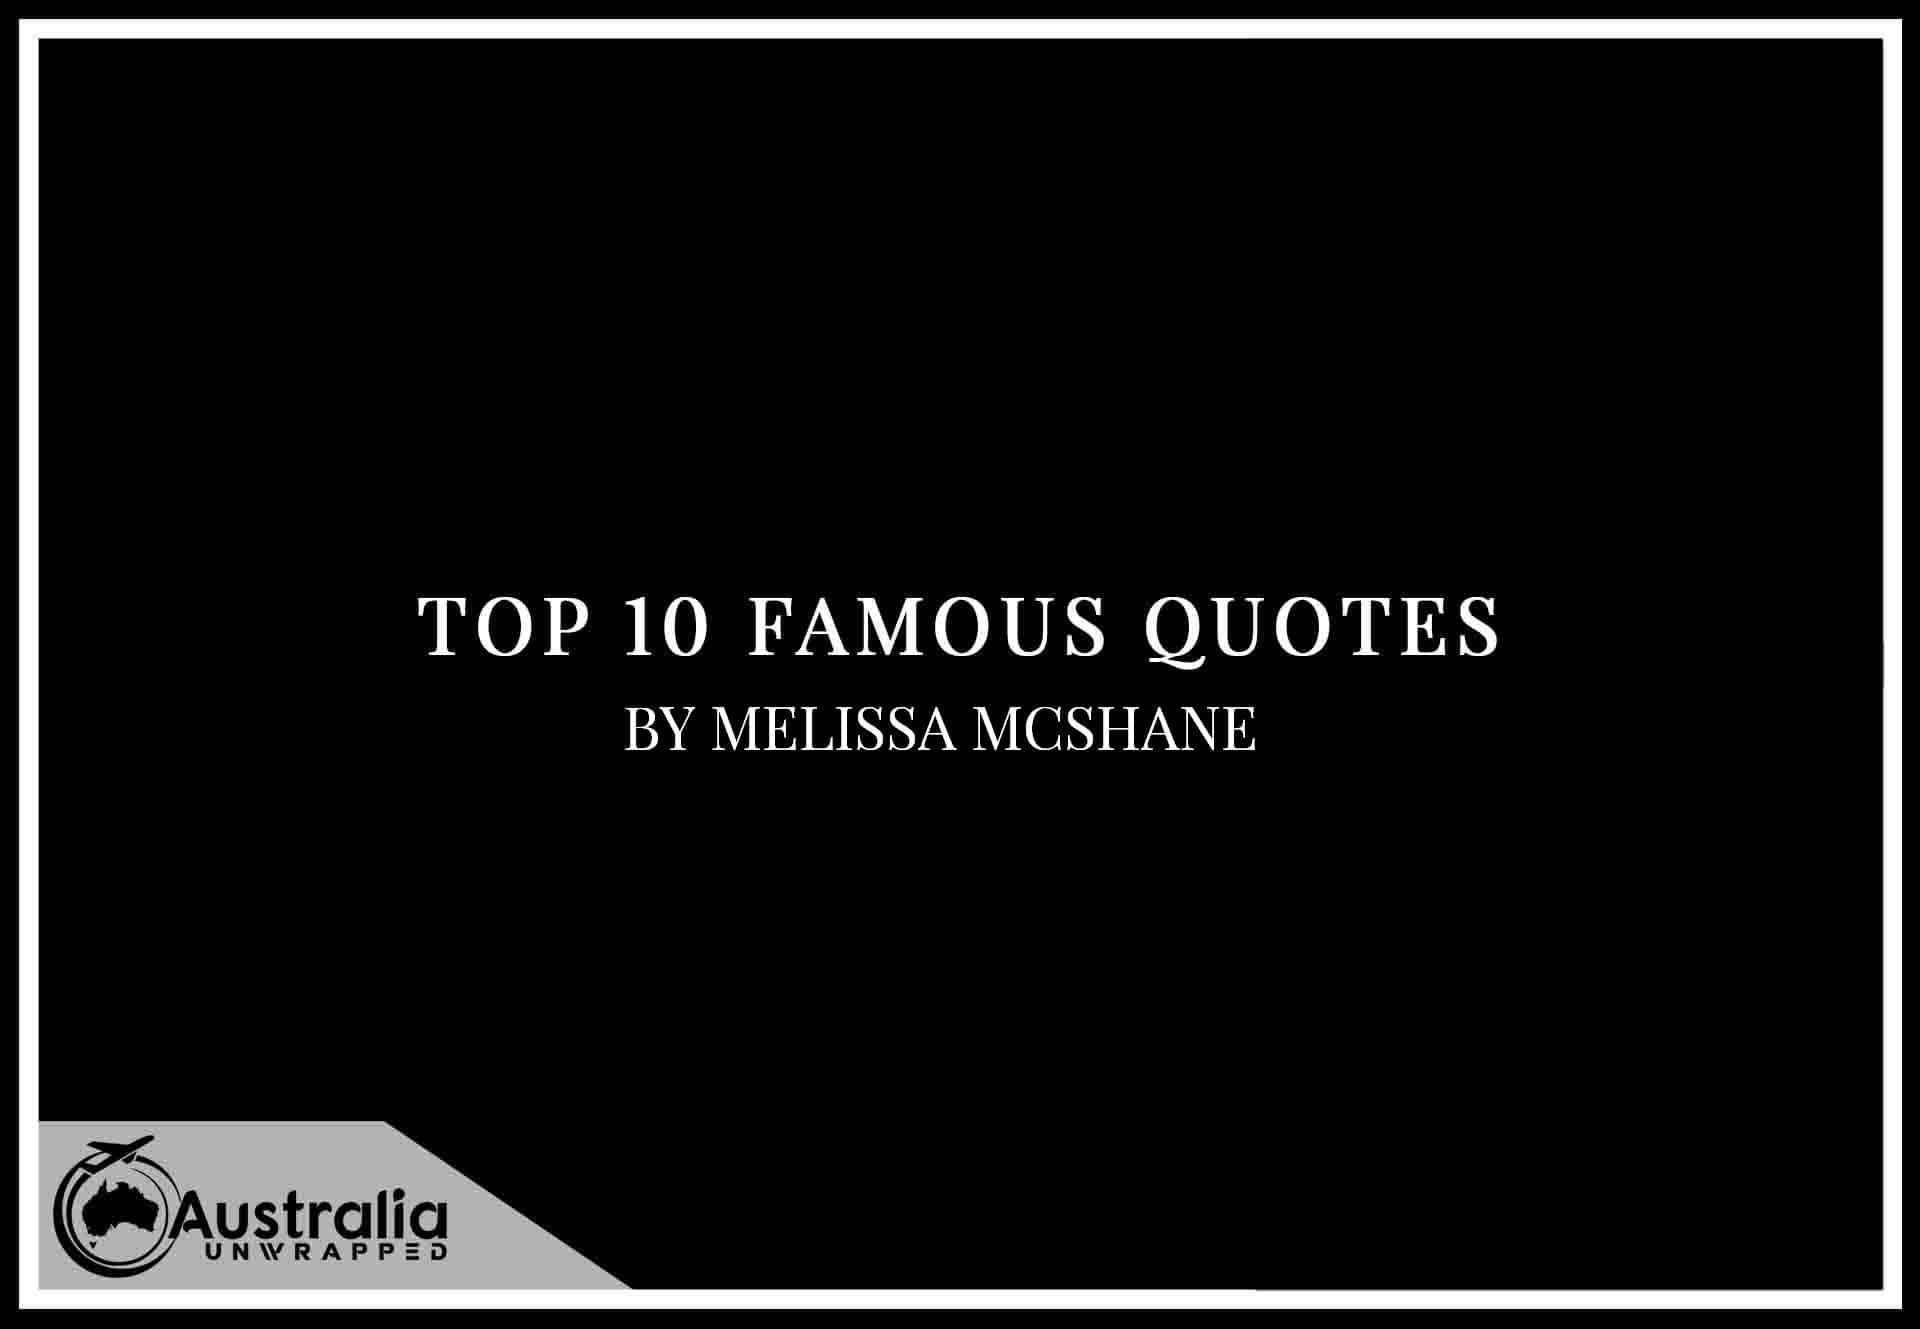 Top 10 Famous Quotes by Author Melissa McShane